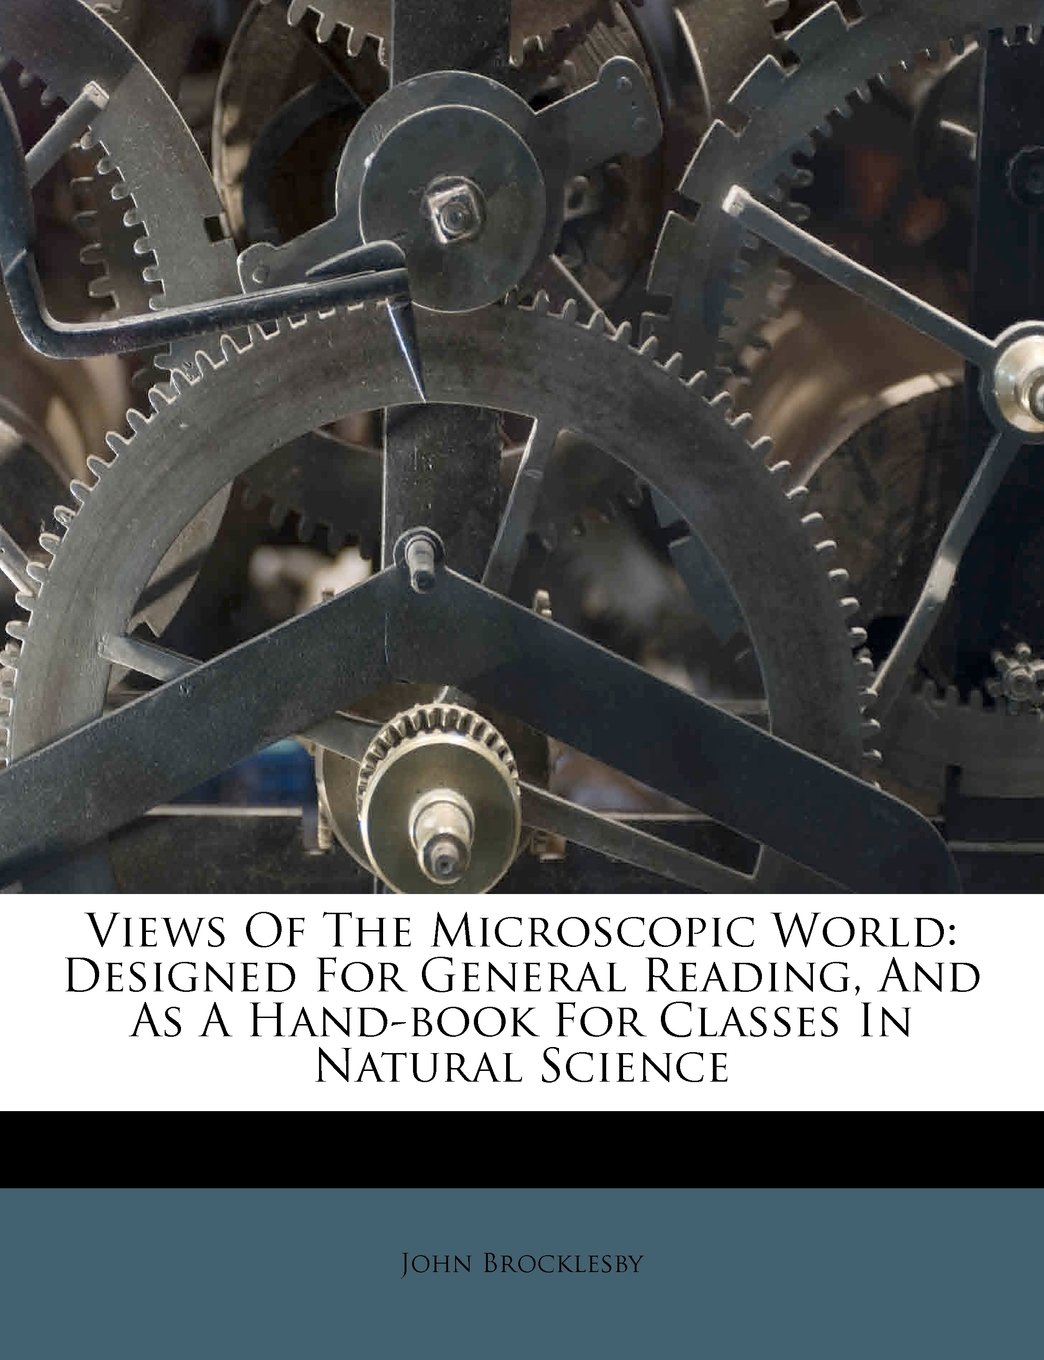 Views Of The Microscopic World: Designed For General Reading, And As A Hand-book For Classes In Natural Science pdf